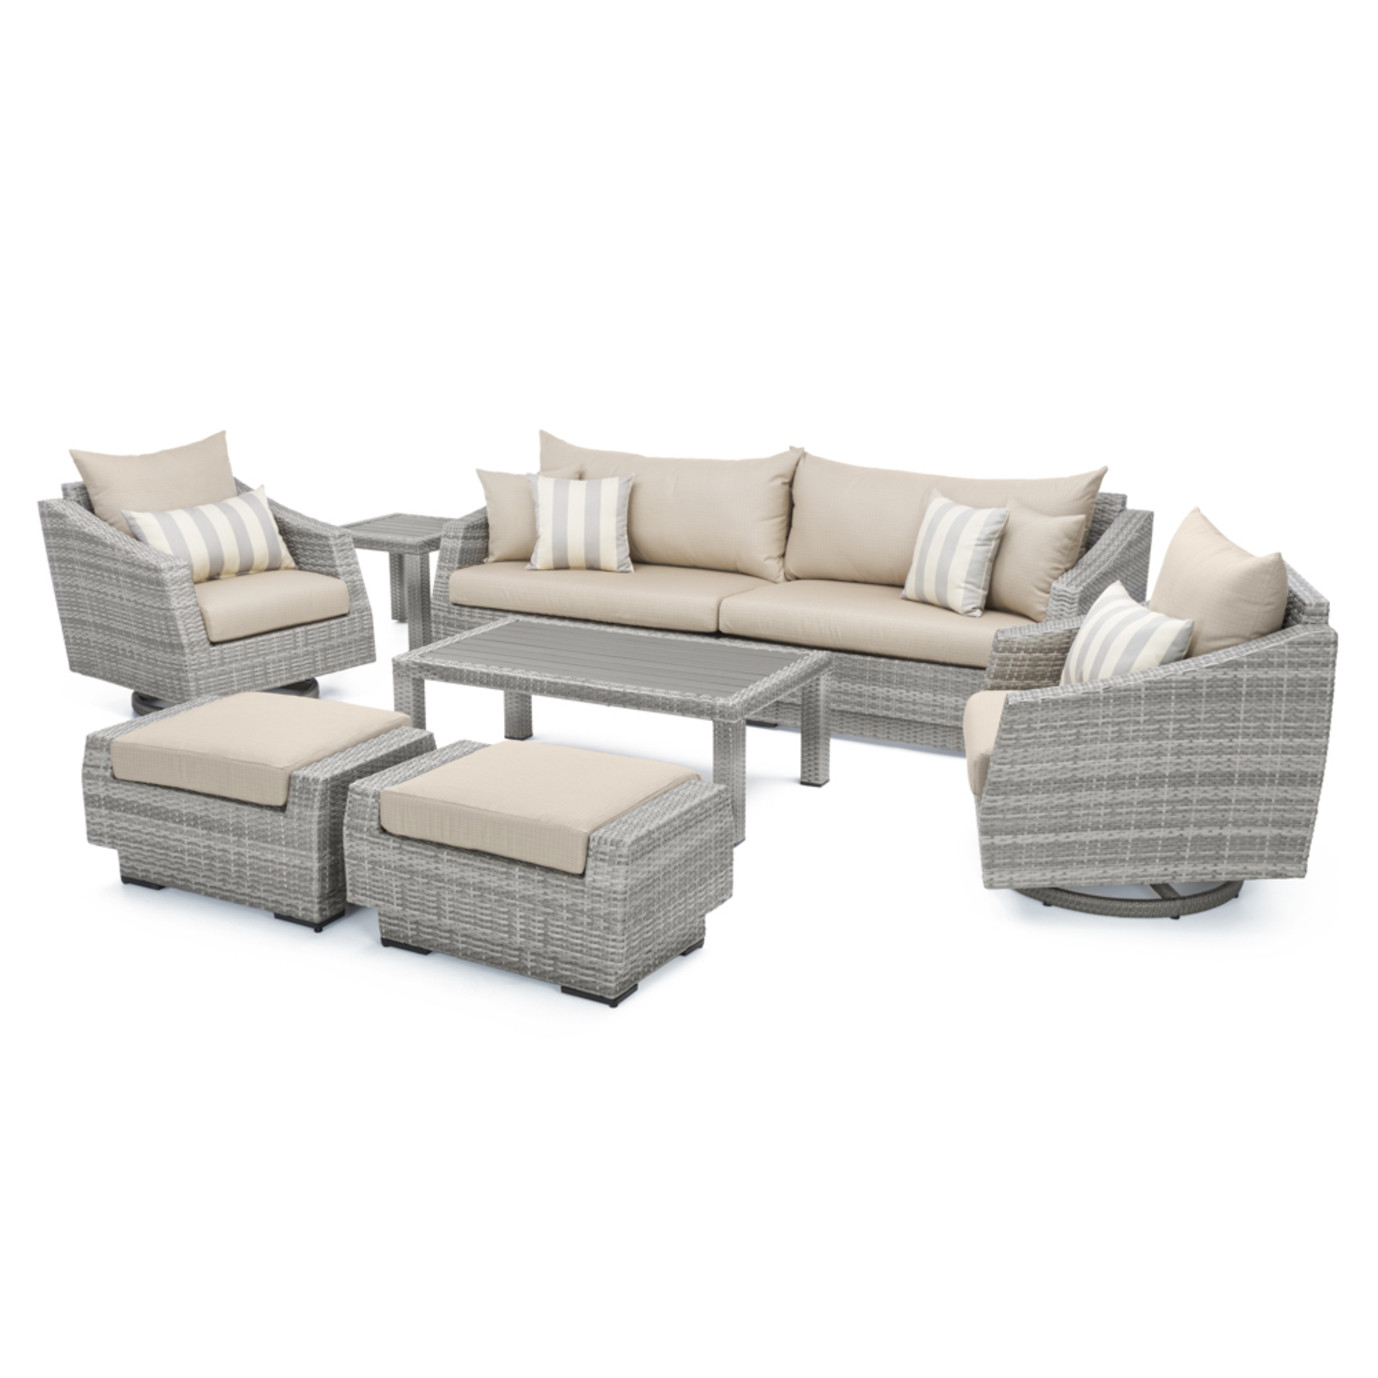 Cannes™ Deluxe 8pc Sofa & Club Chair Set - Slate Gray